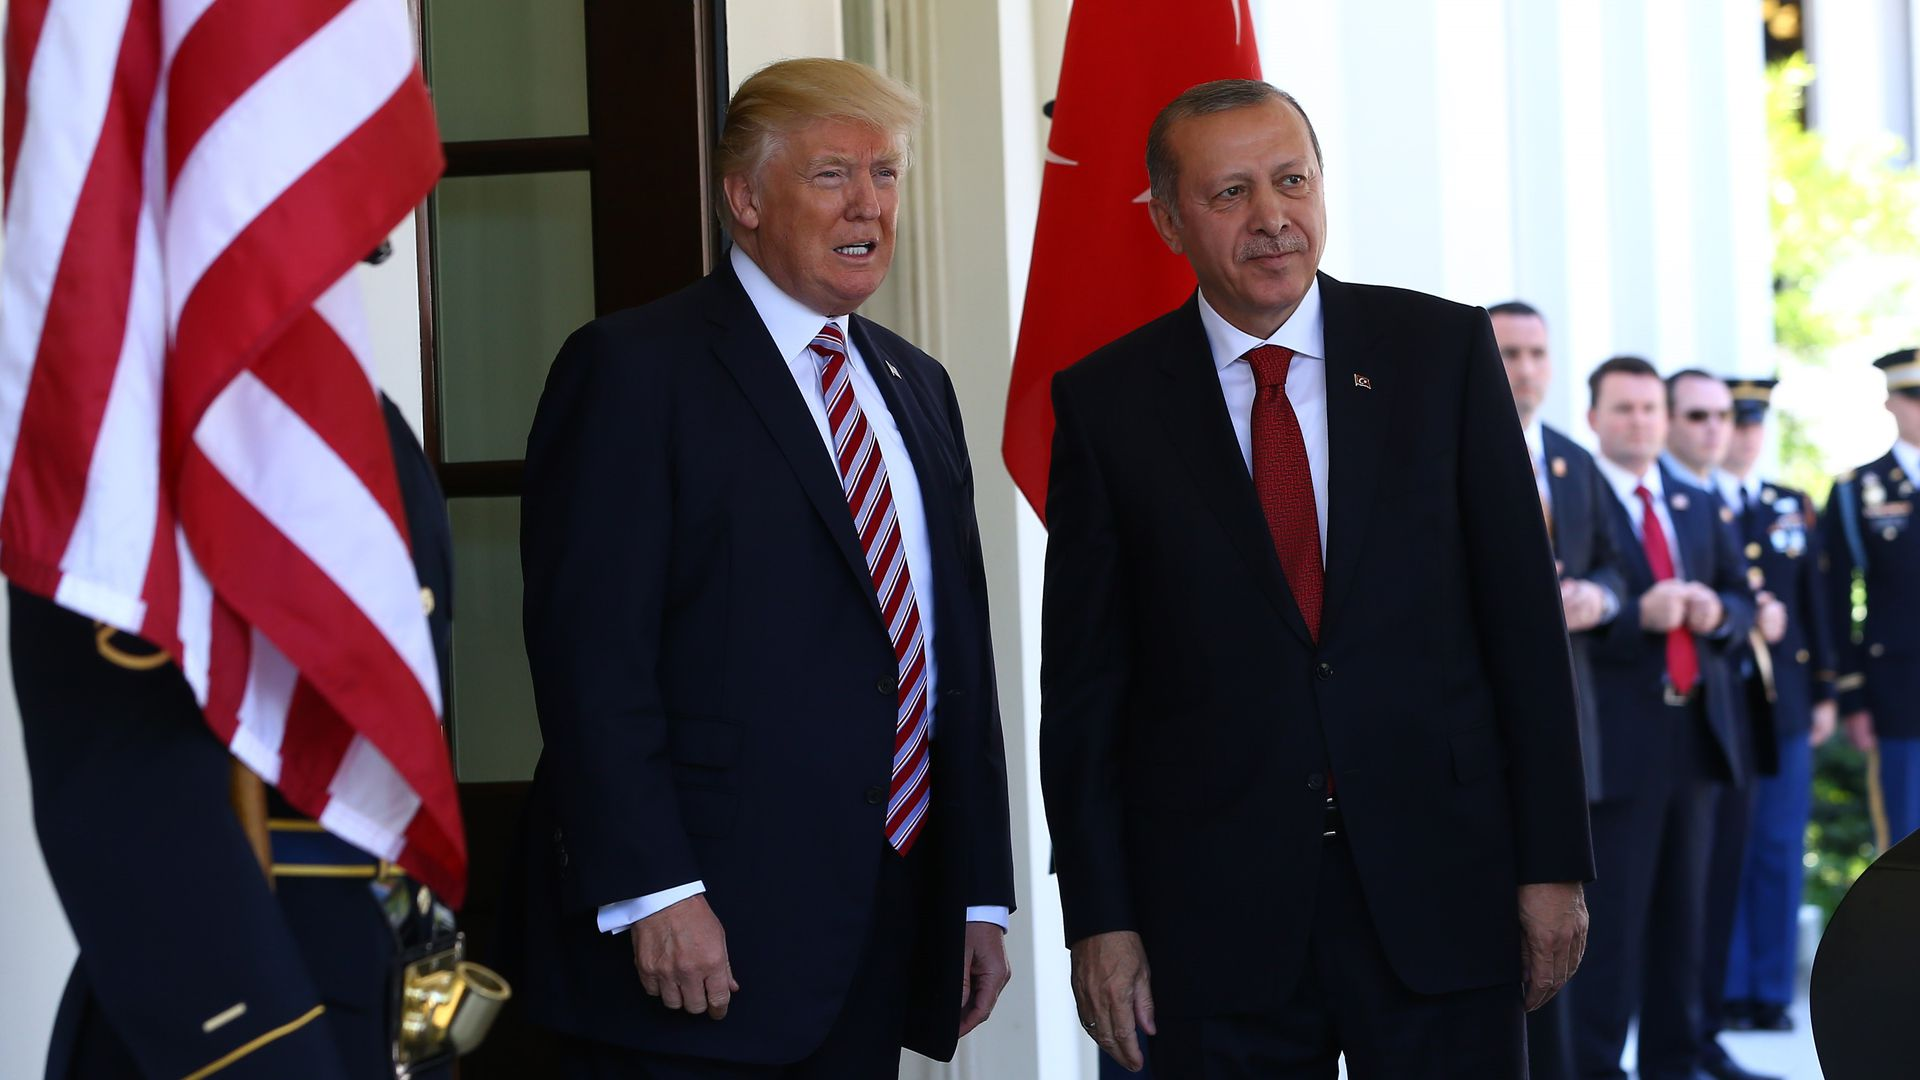 President Trump and President Erdogan stand side-by-side outside the White House